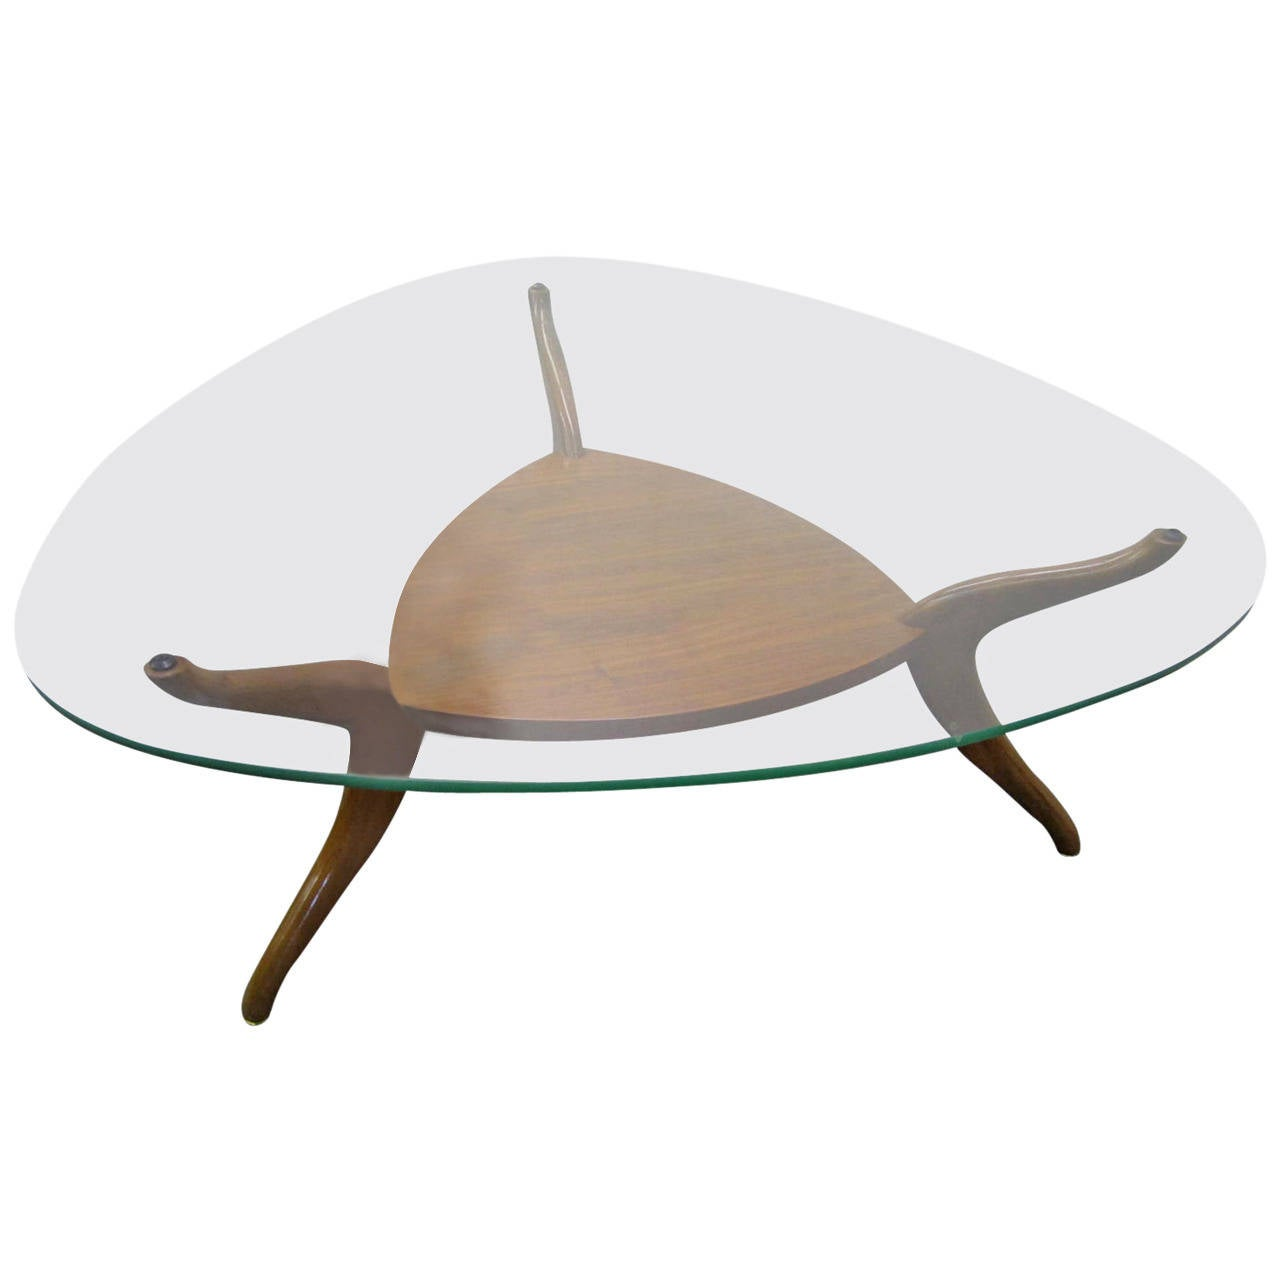 Sculptural Vladimir Kagan Style Triangular Coffee Table Mid Century Modern For Sale At 1stdibs